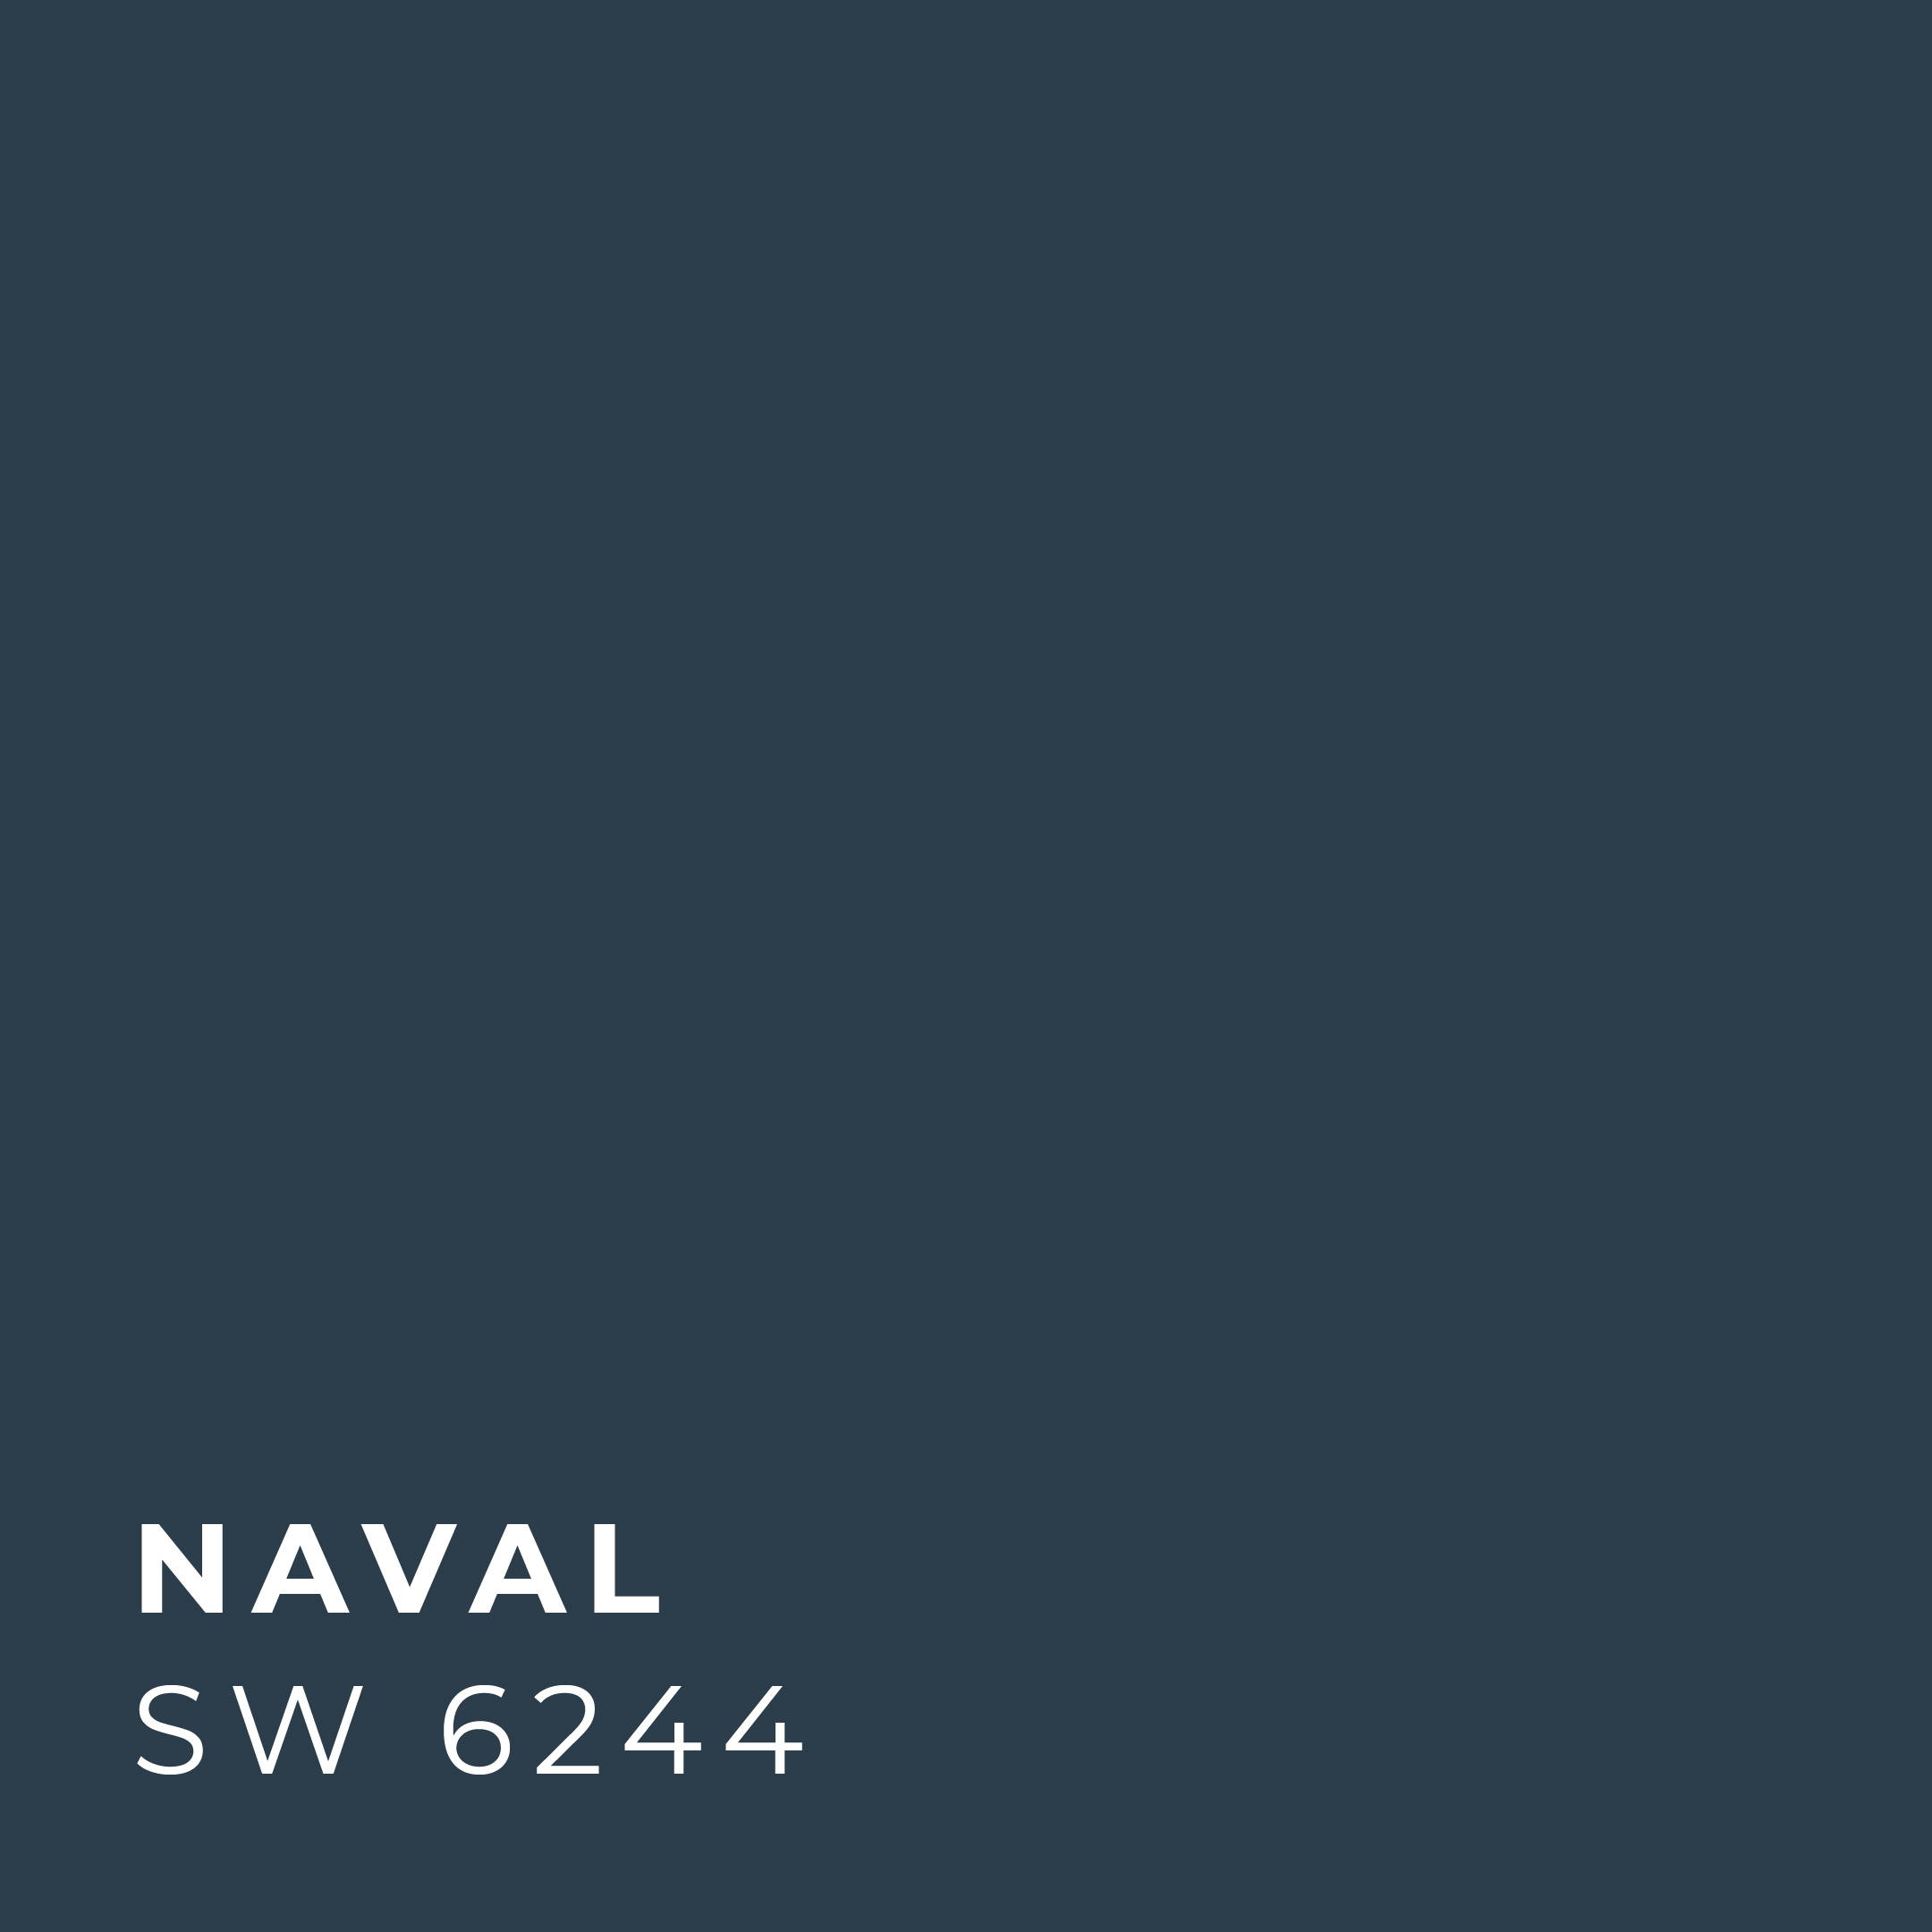 Sherwin Williams 2020 Color Naval